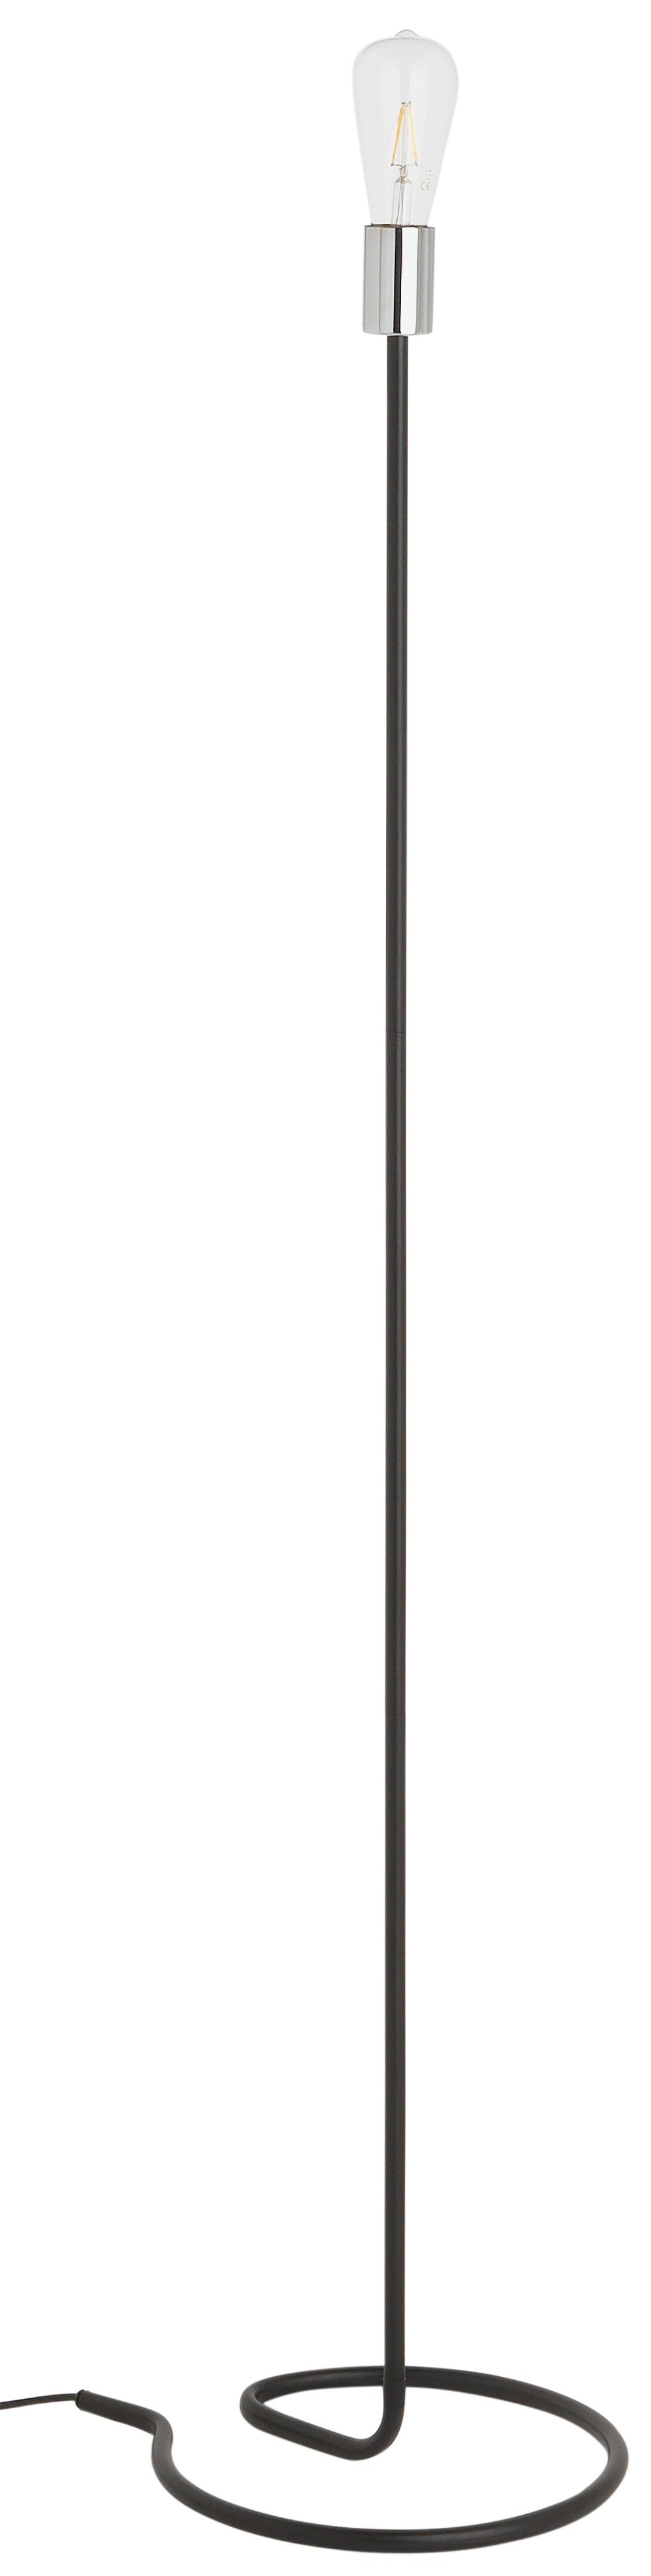 home spiralle floor lamp  black and chrome